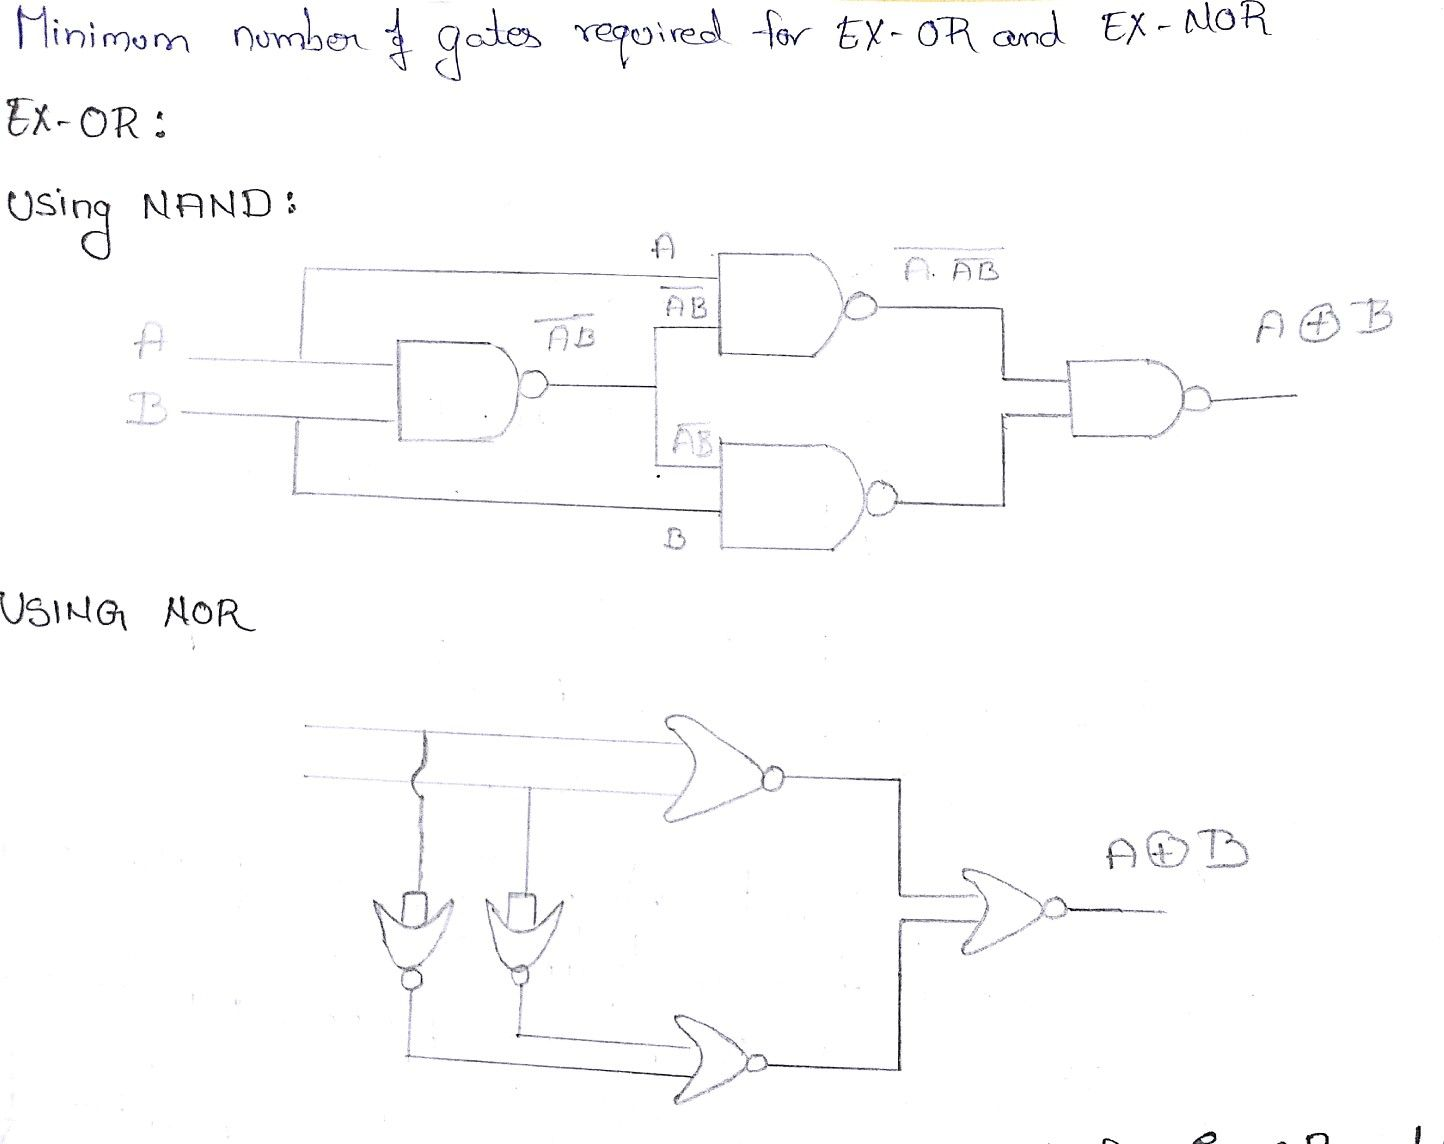 Exor Needs 4 Nand Gates And 5 Nor